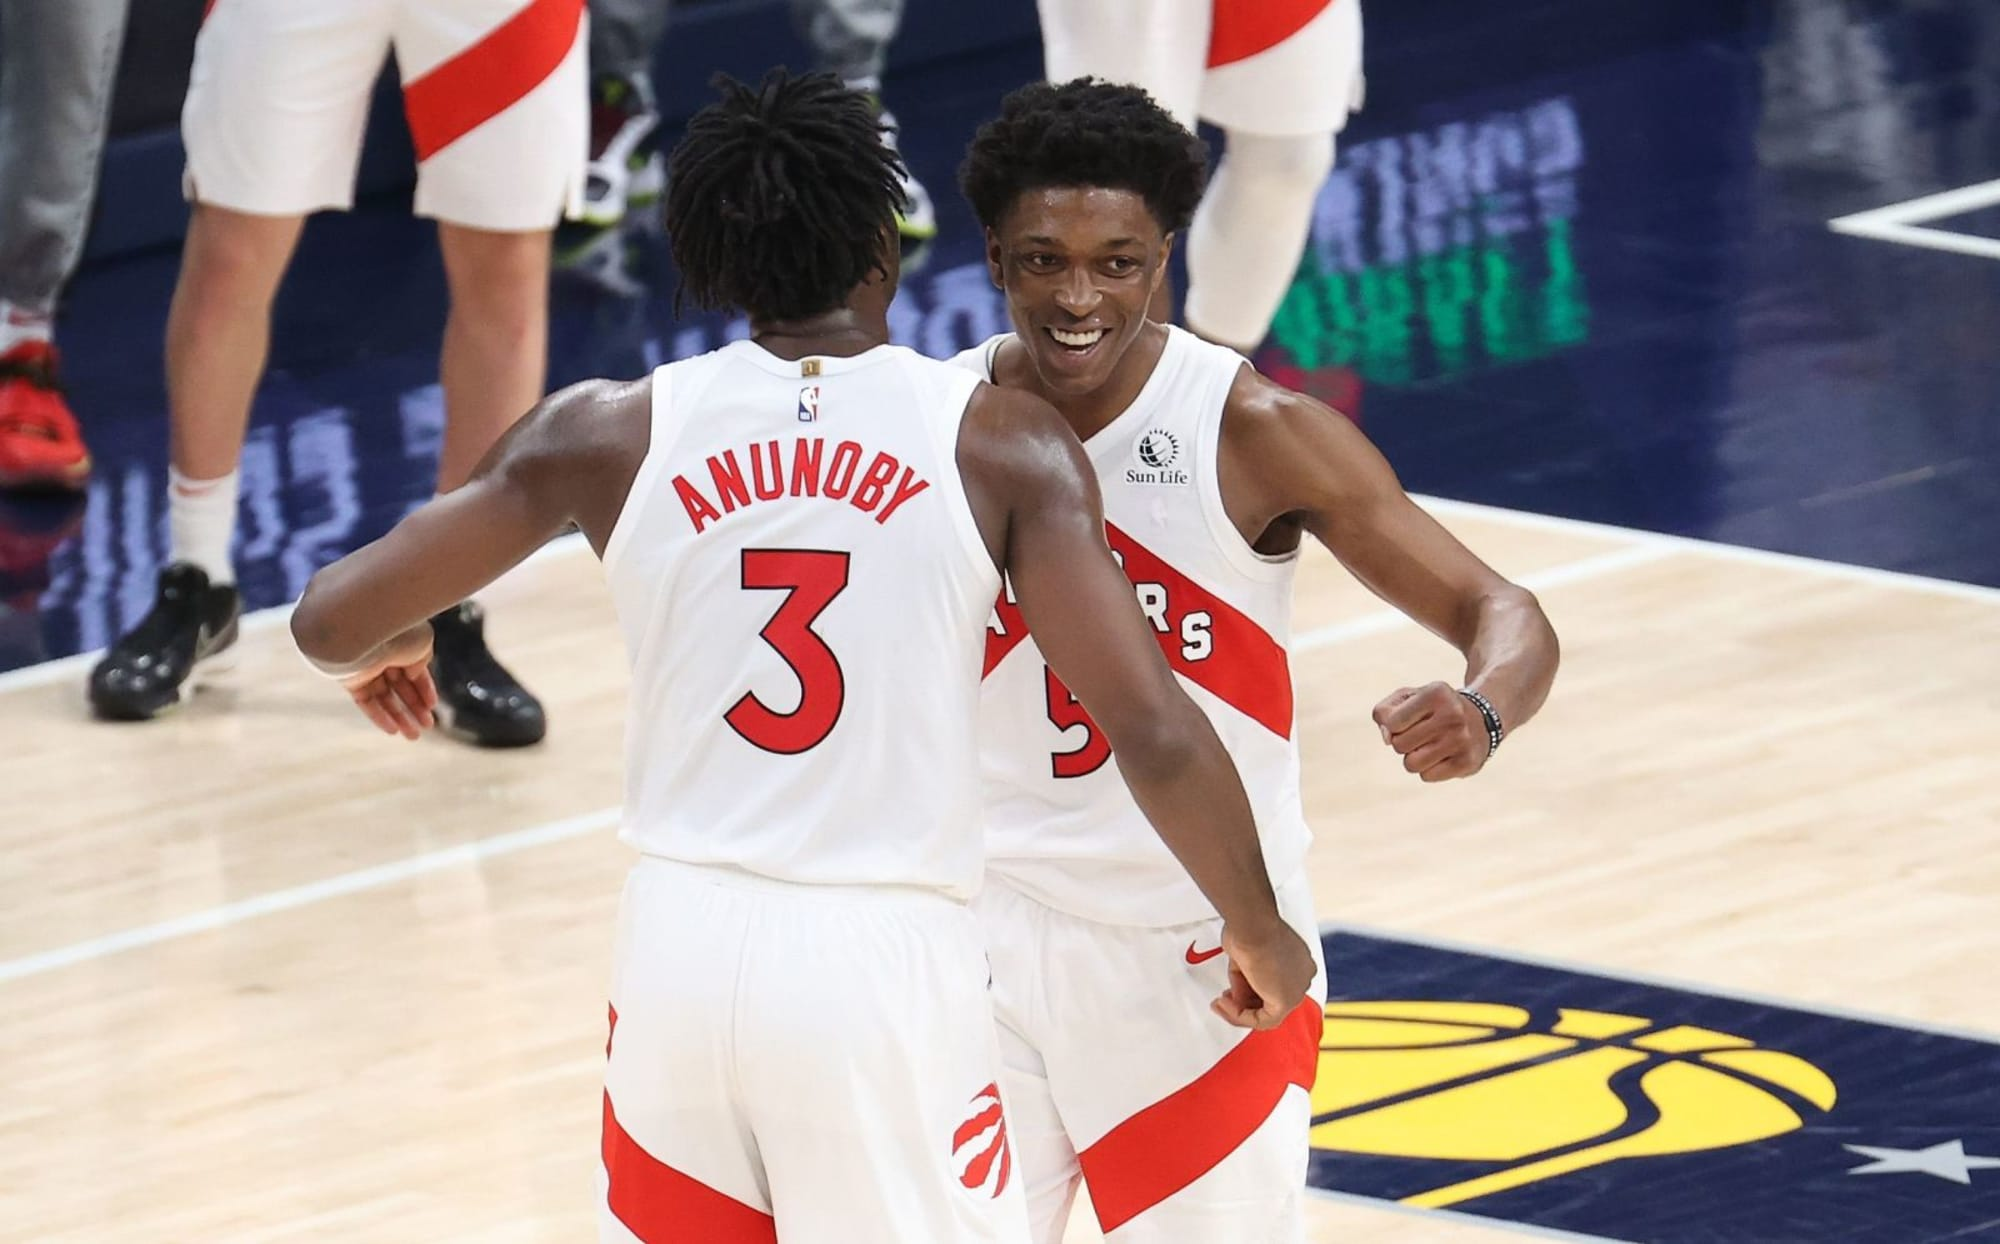 Raptors: Does Stanley Johnson's defense make up for non-existent offense?